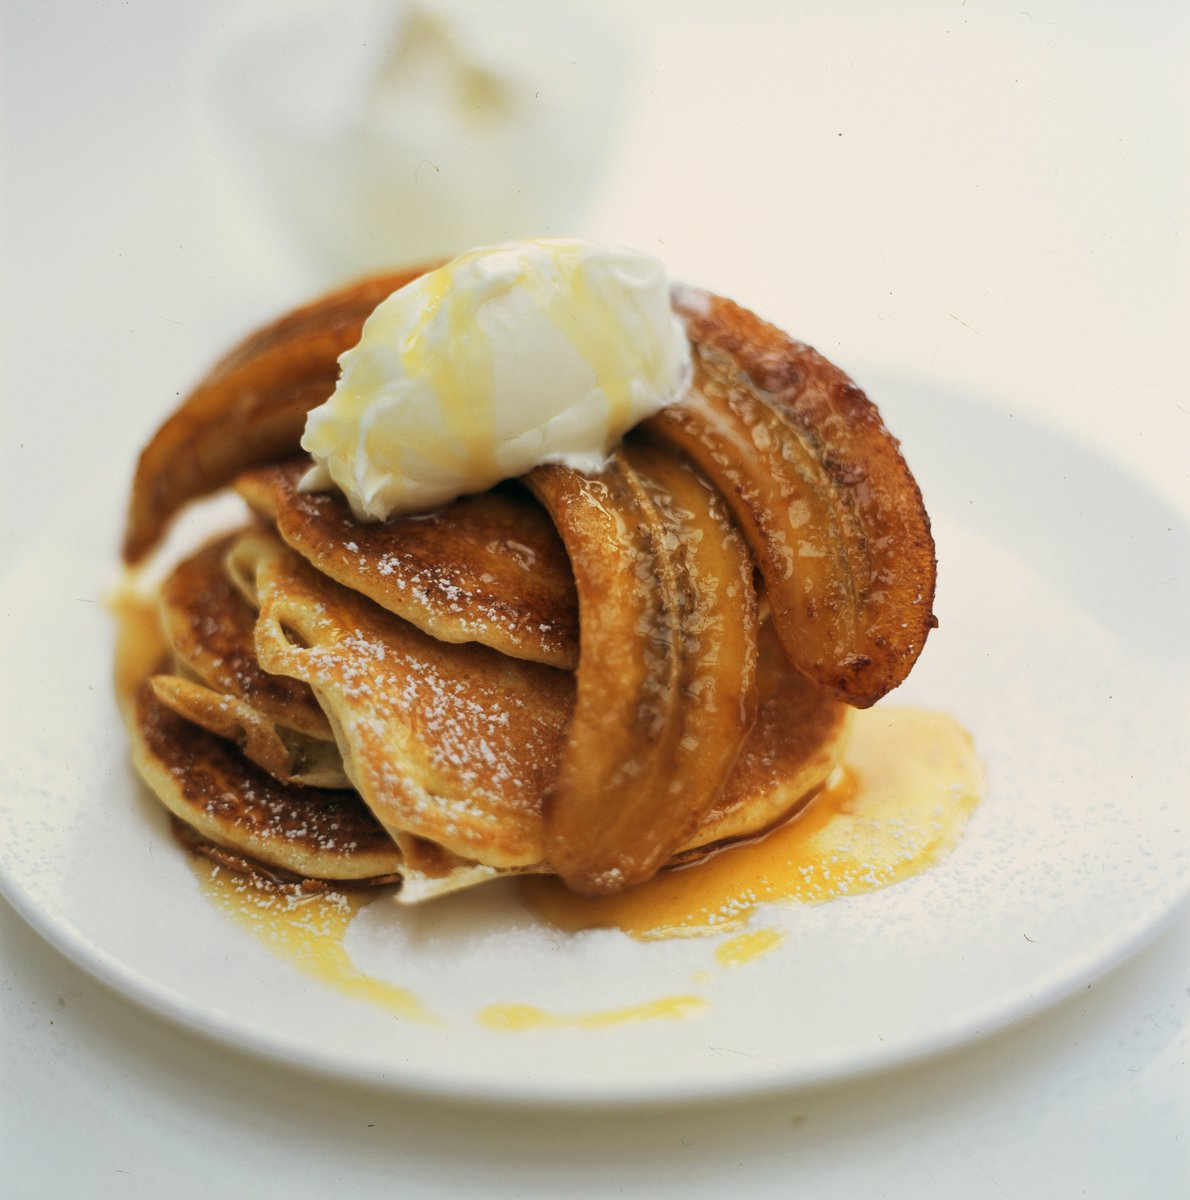 ????+????+????=???? These fluffy, sticky banana pancakes are a real treat for the weekend! https://t.co/nqFSMYvMOW https://t.co/i4IW5mRmZC